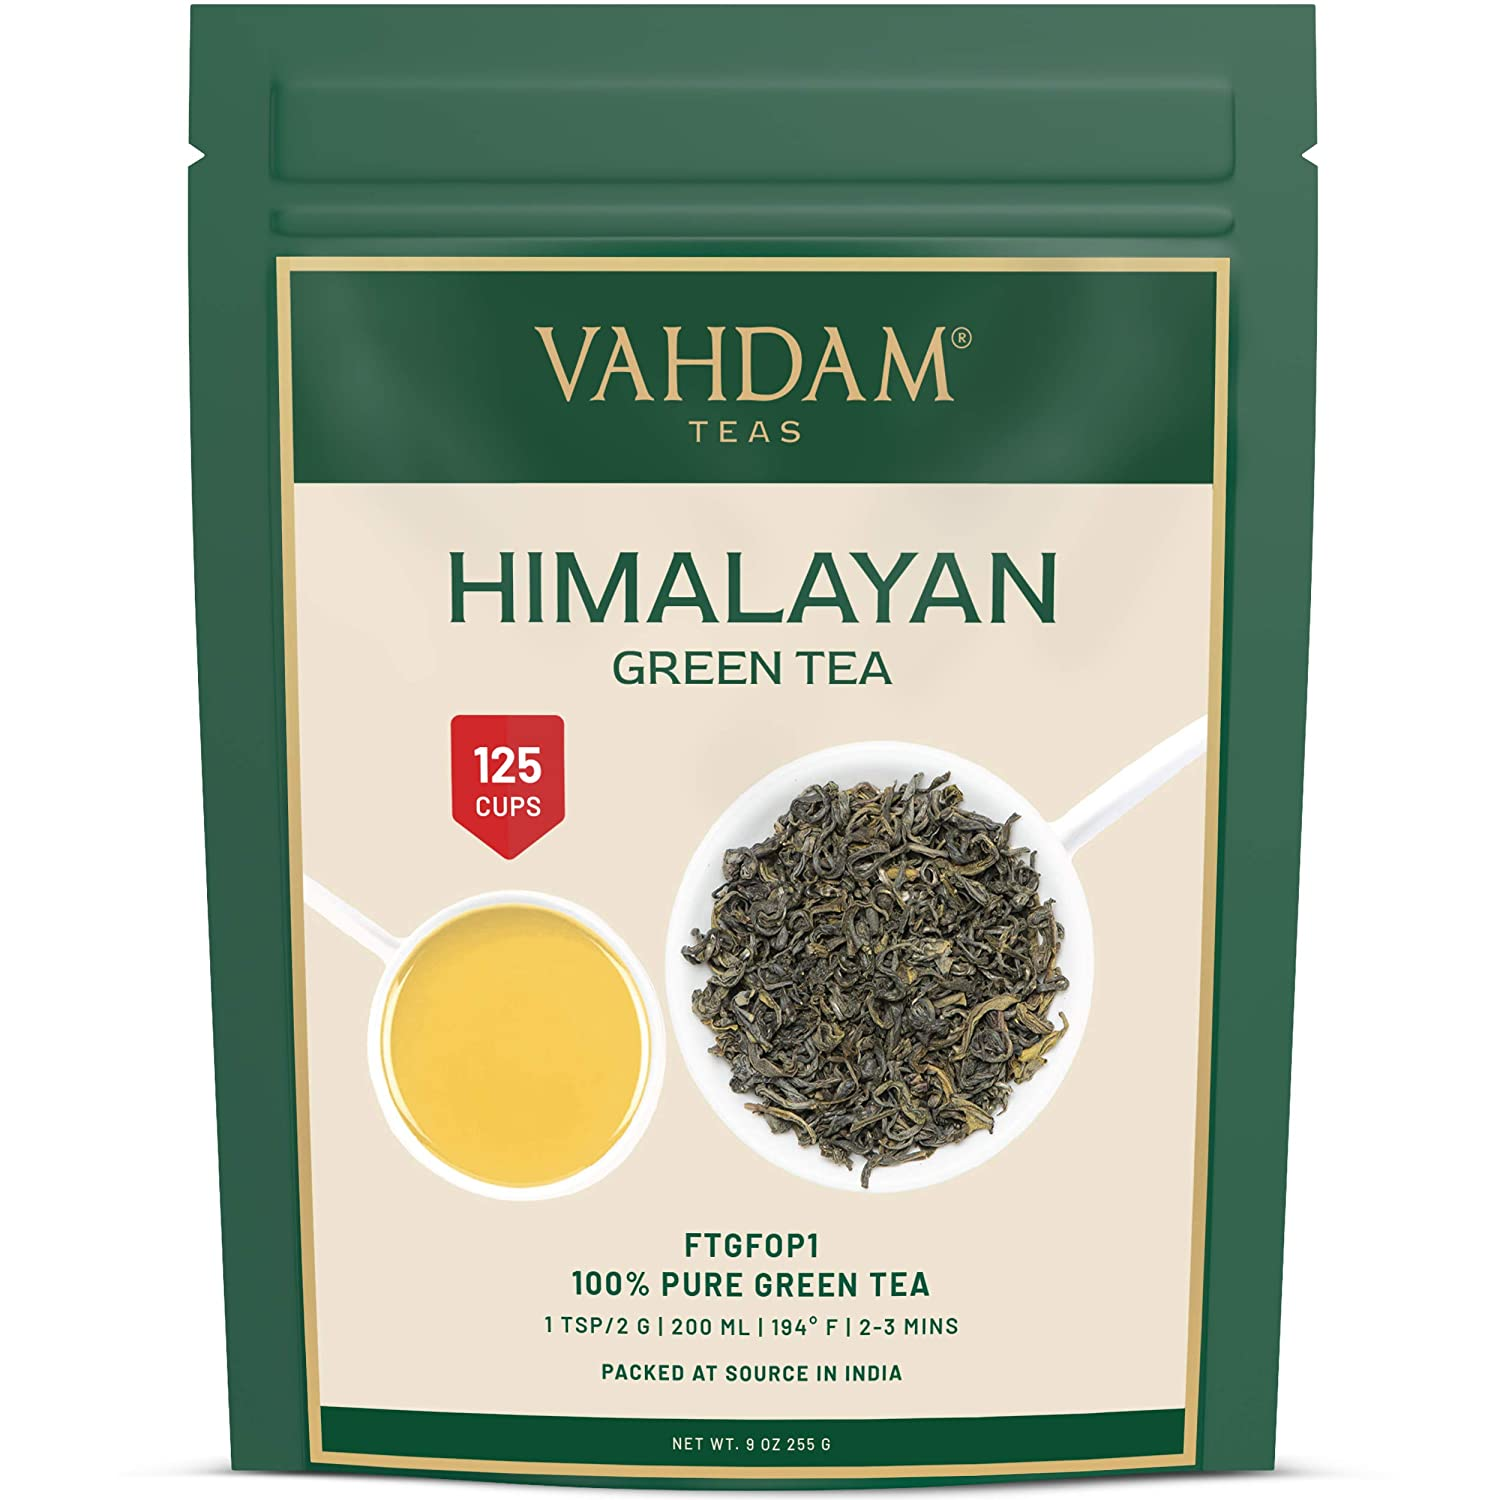 VAHDAM Green Tea Leaves from Himalayas 10 Complete Free Shipping 9oz Cups low-pricing - 100+ Bag